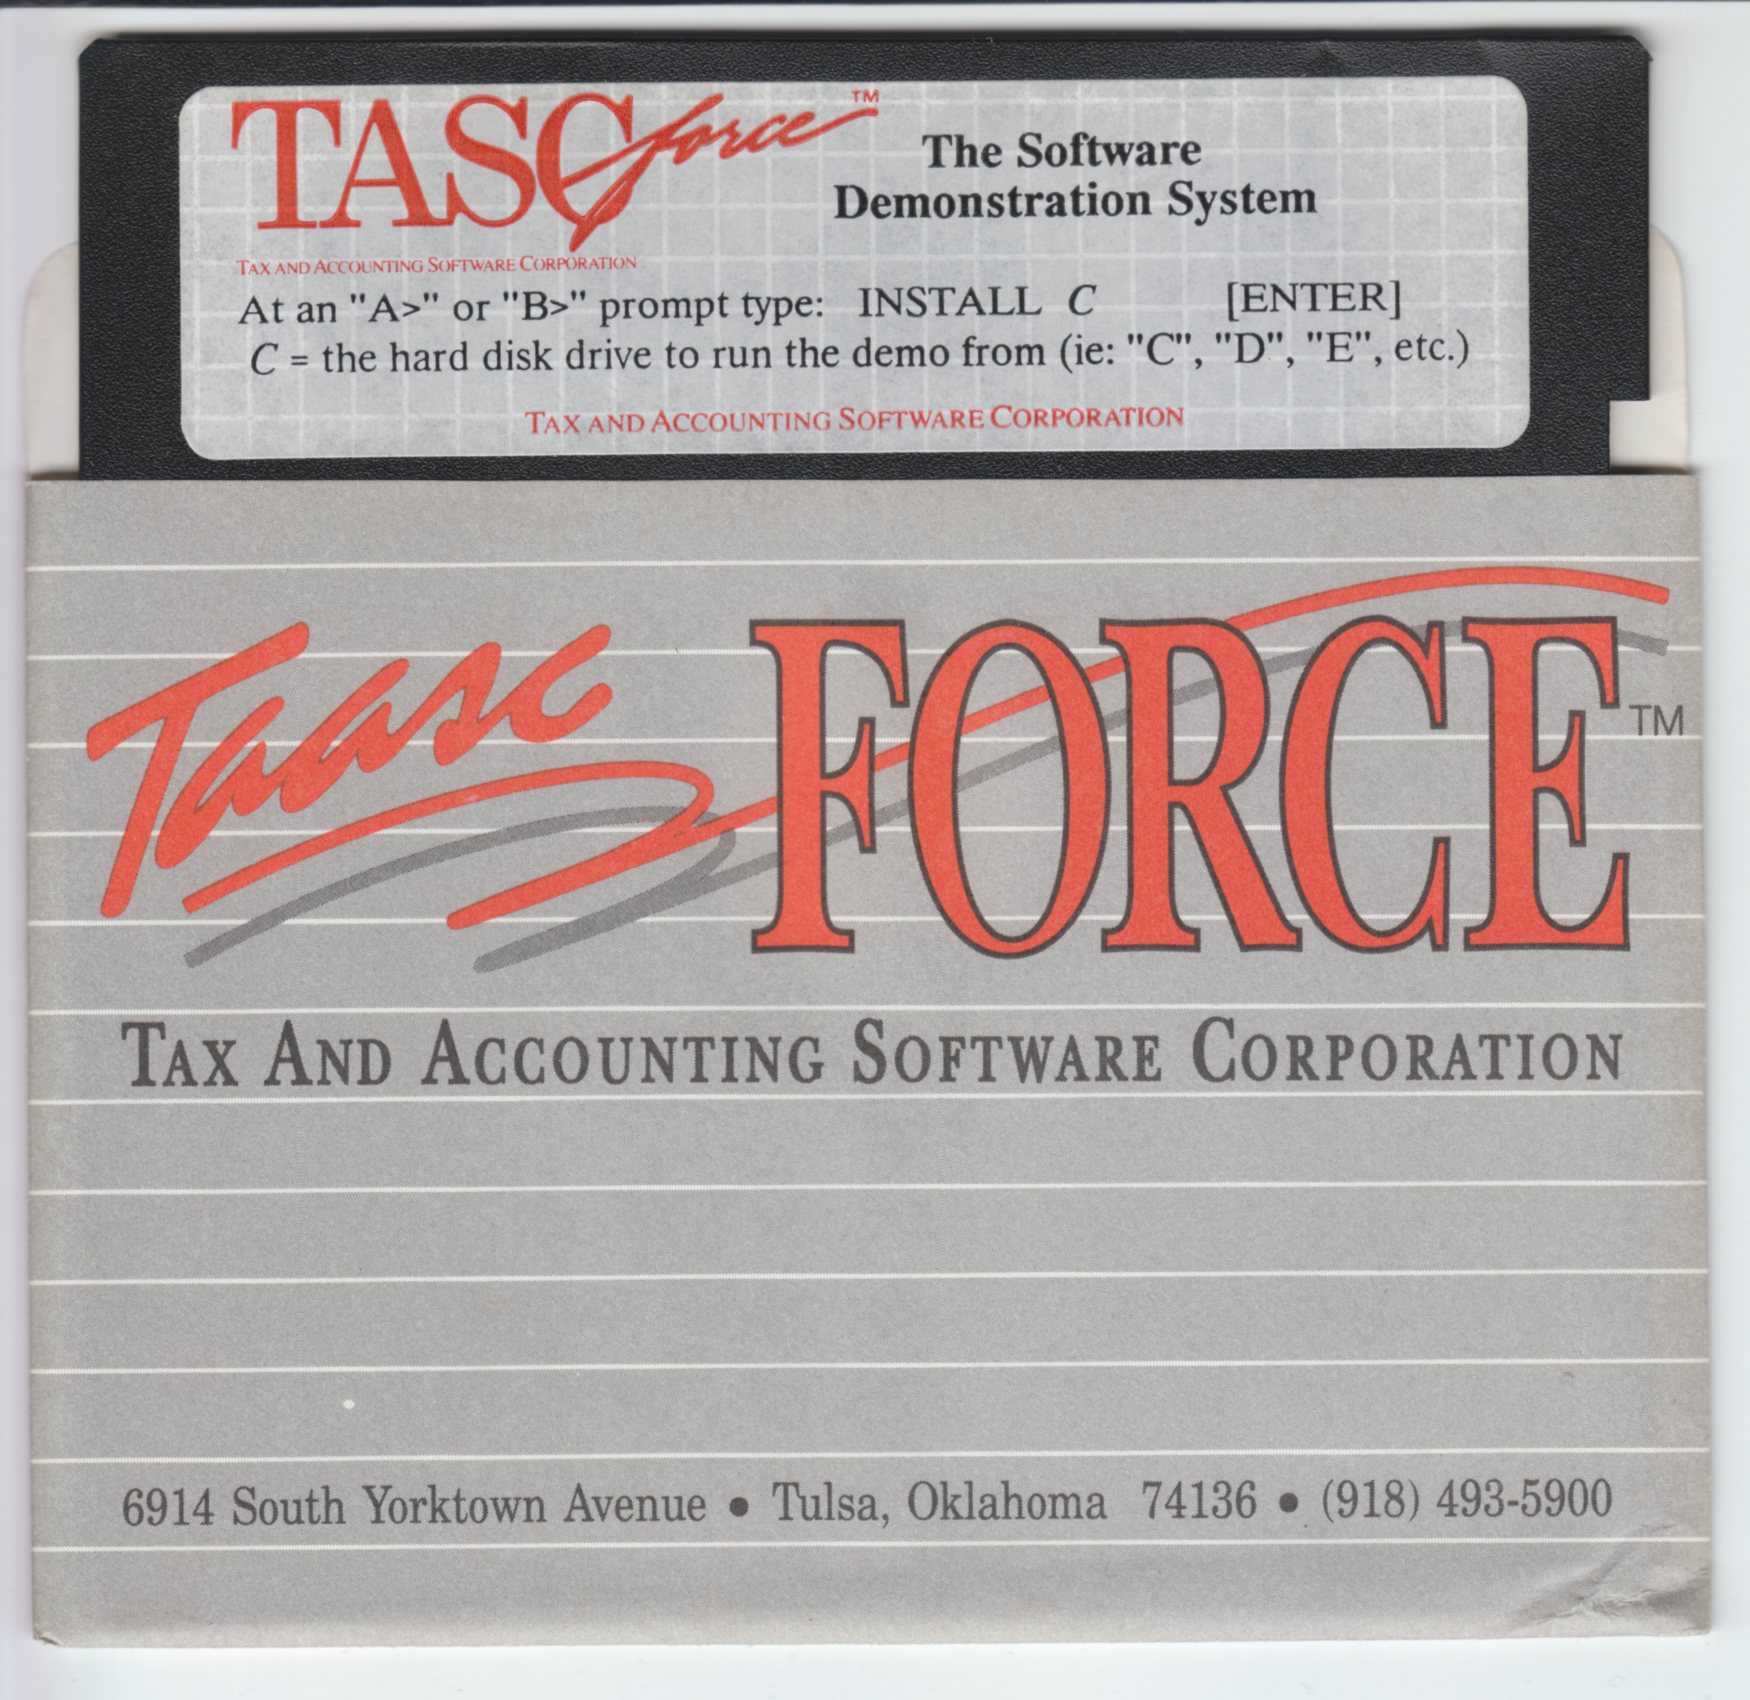 TASCforce The Software Demonstation System, 1991 Edition